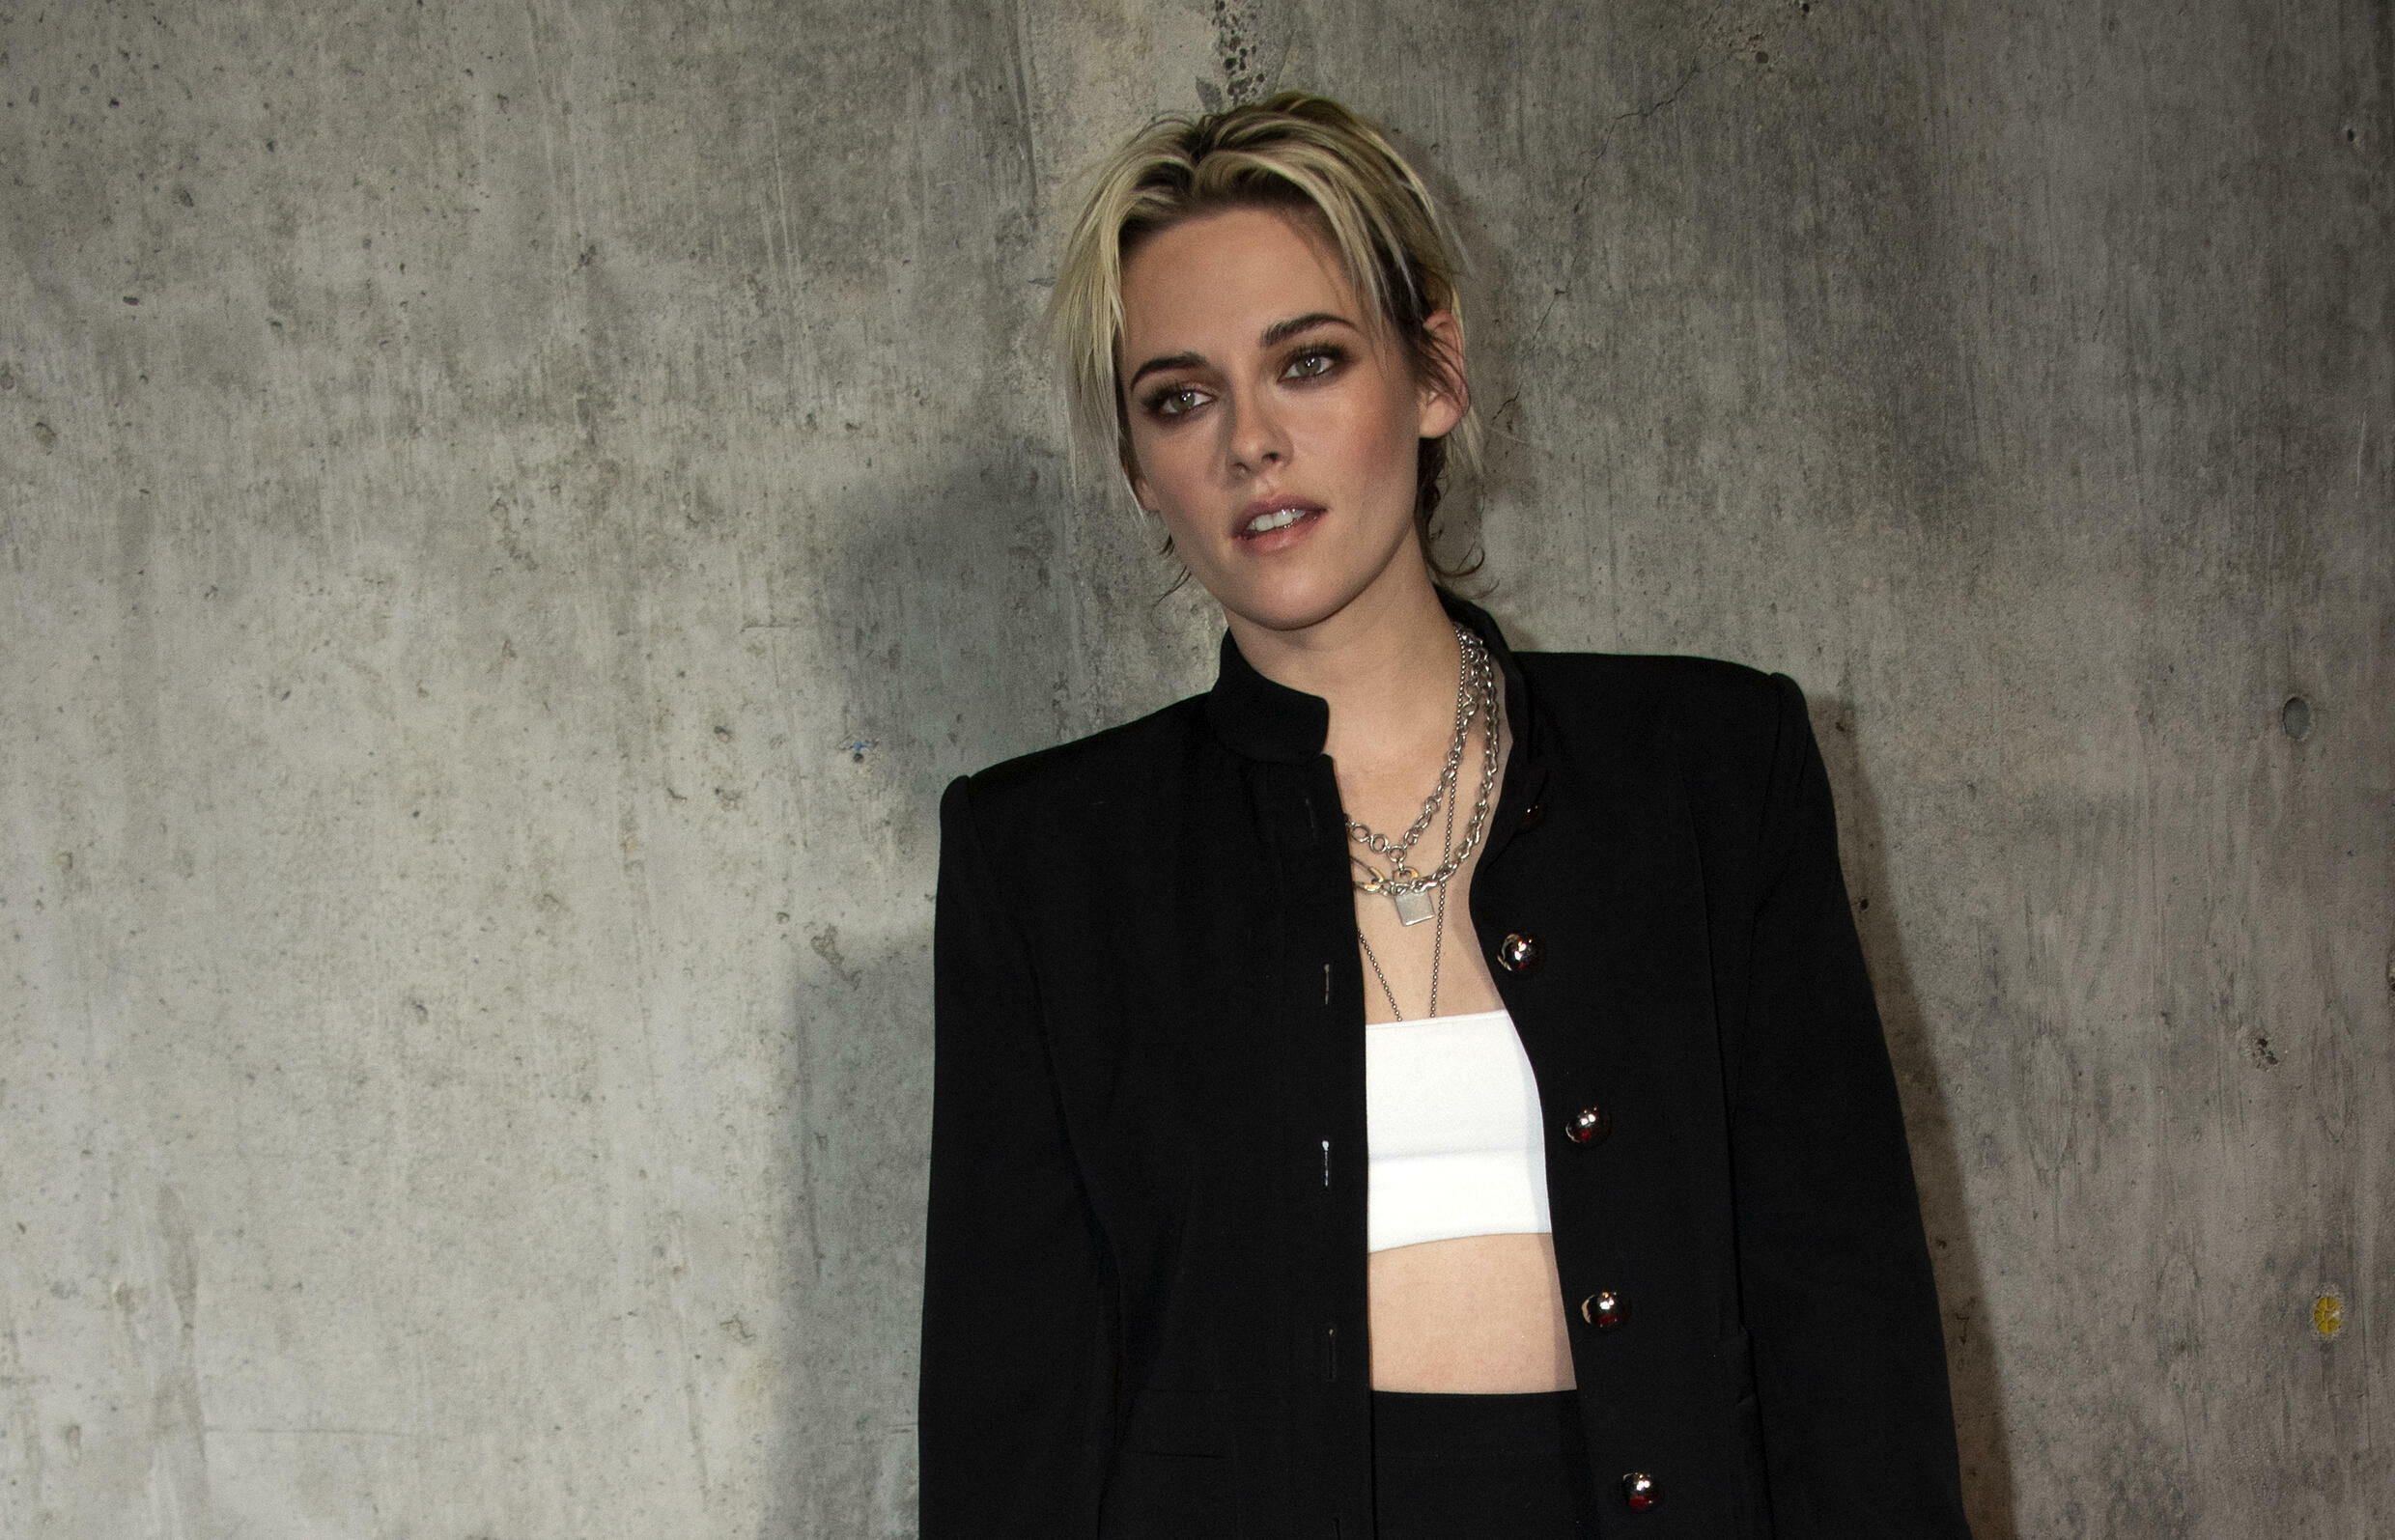 Kristen Stewart is the latest to take on the role of Princess Diana, which has made and damaged careers in the past